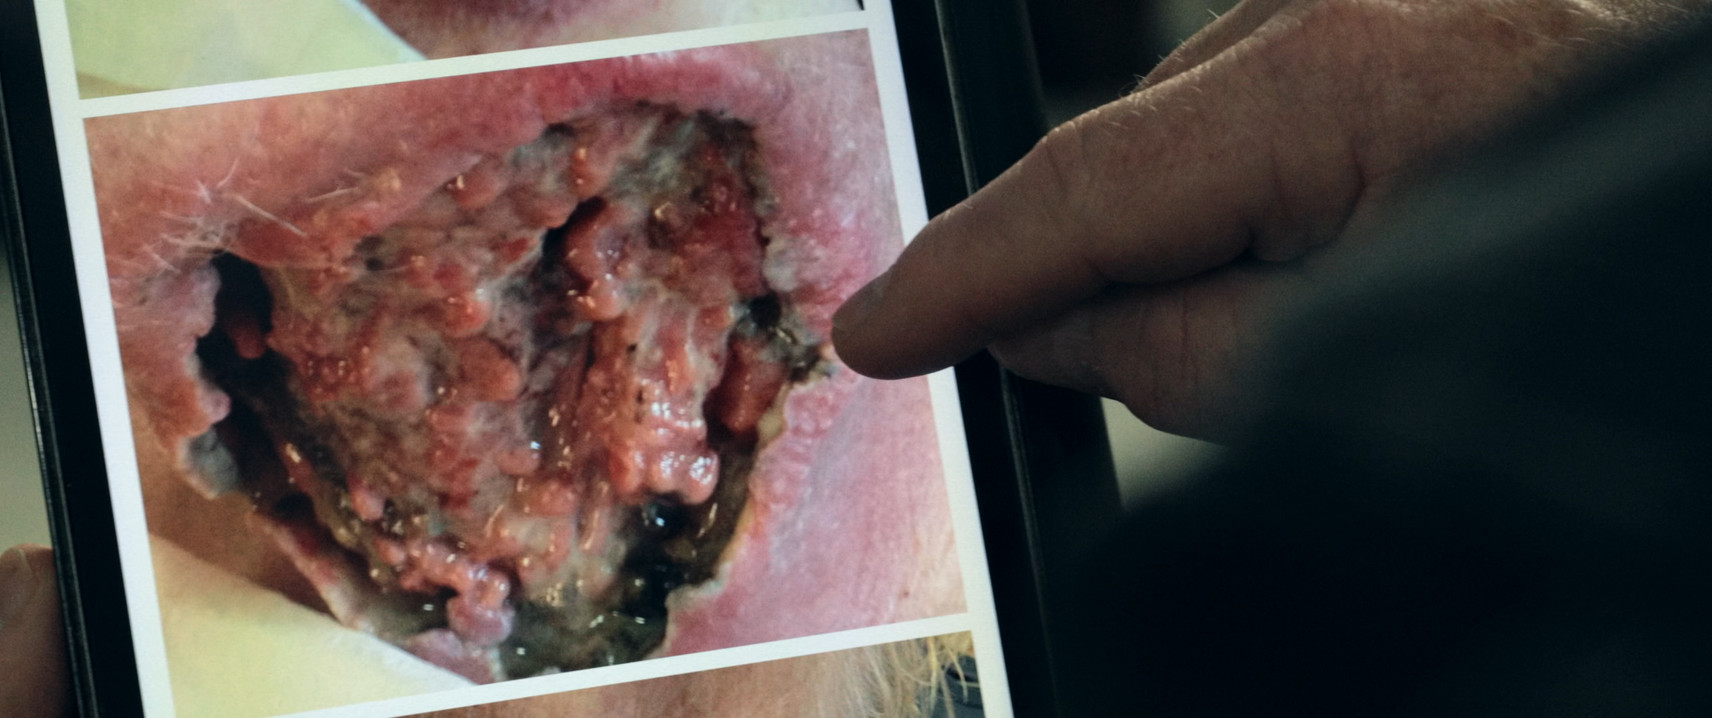 Michael Stoopman, squamous cell carcinoma